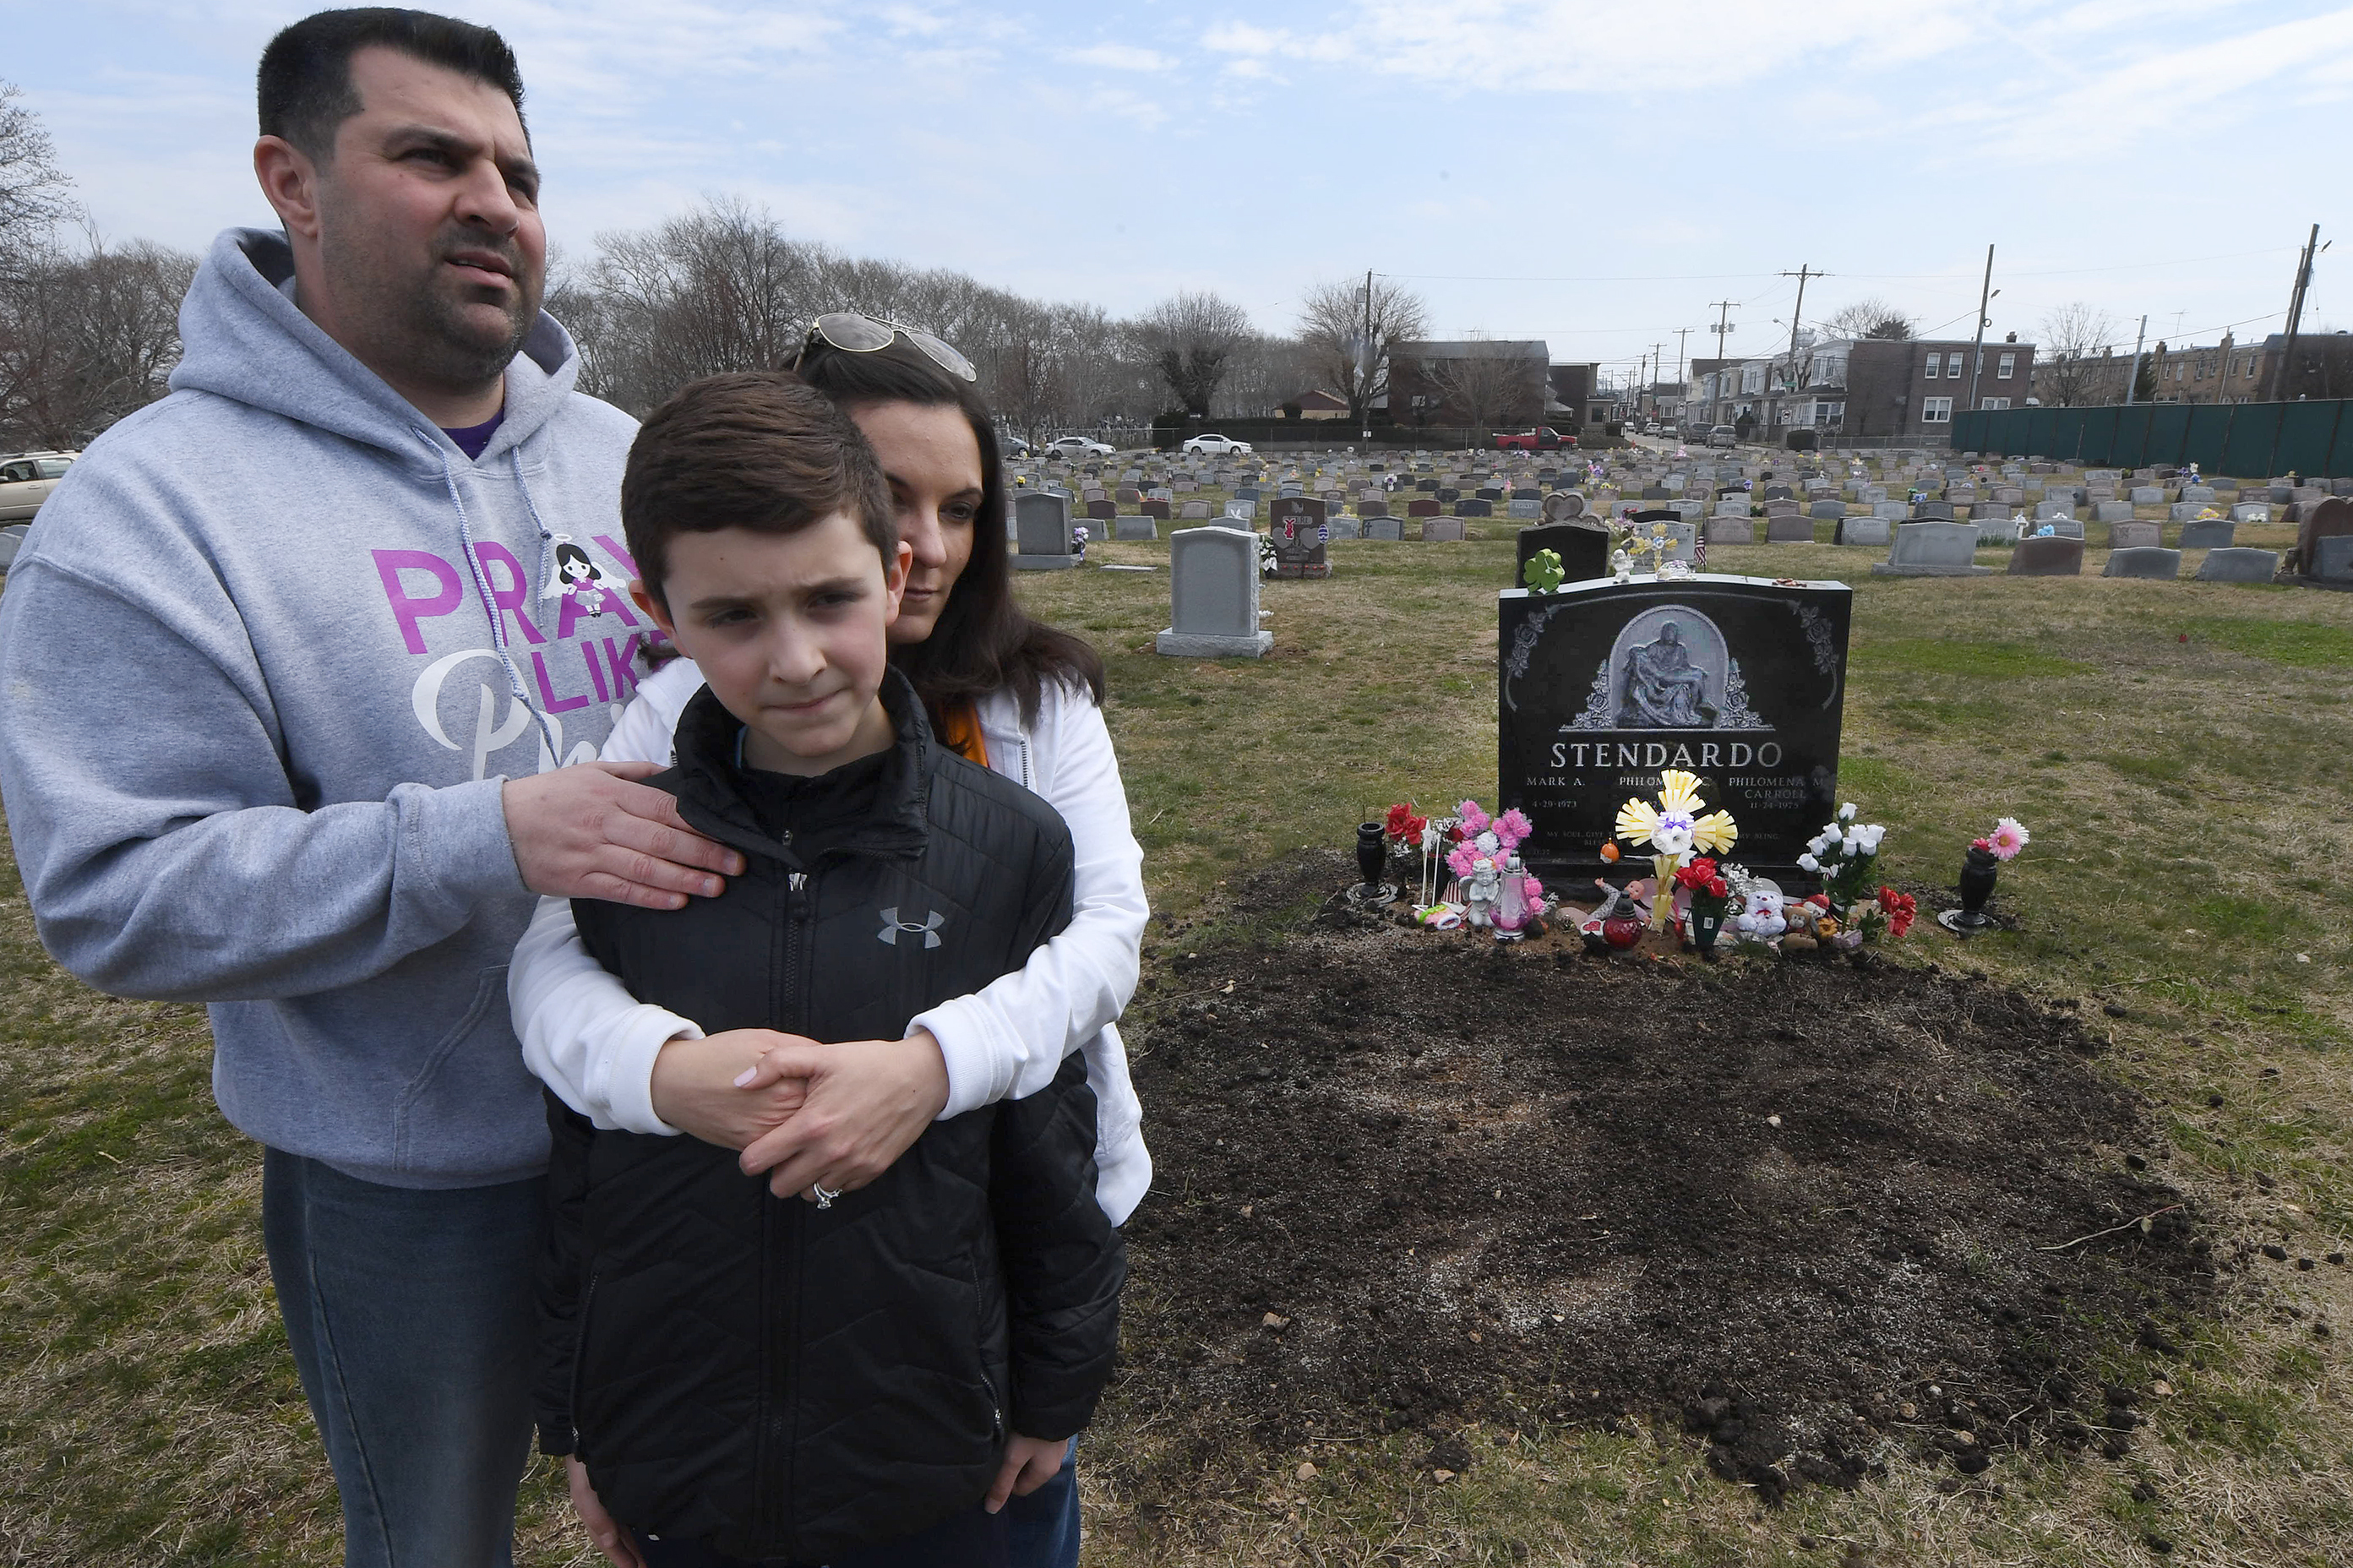 Mark Stendardo and Mina Carroll with son Mark near the grave of their daughter Philomena.